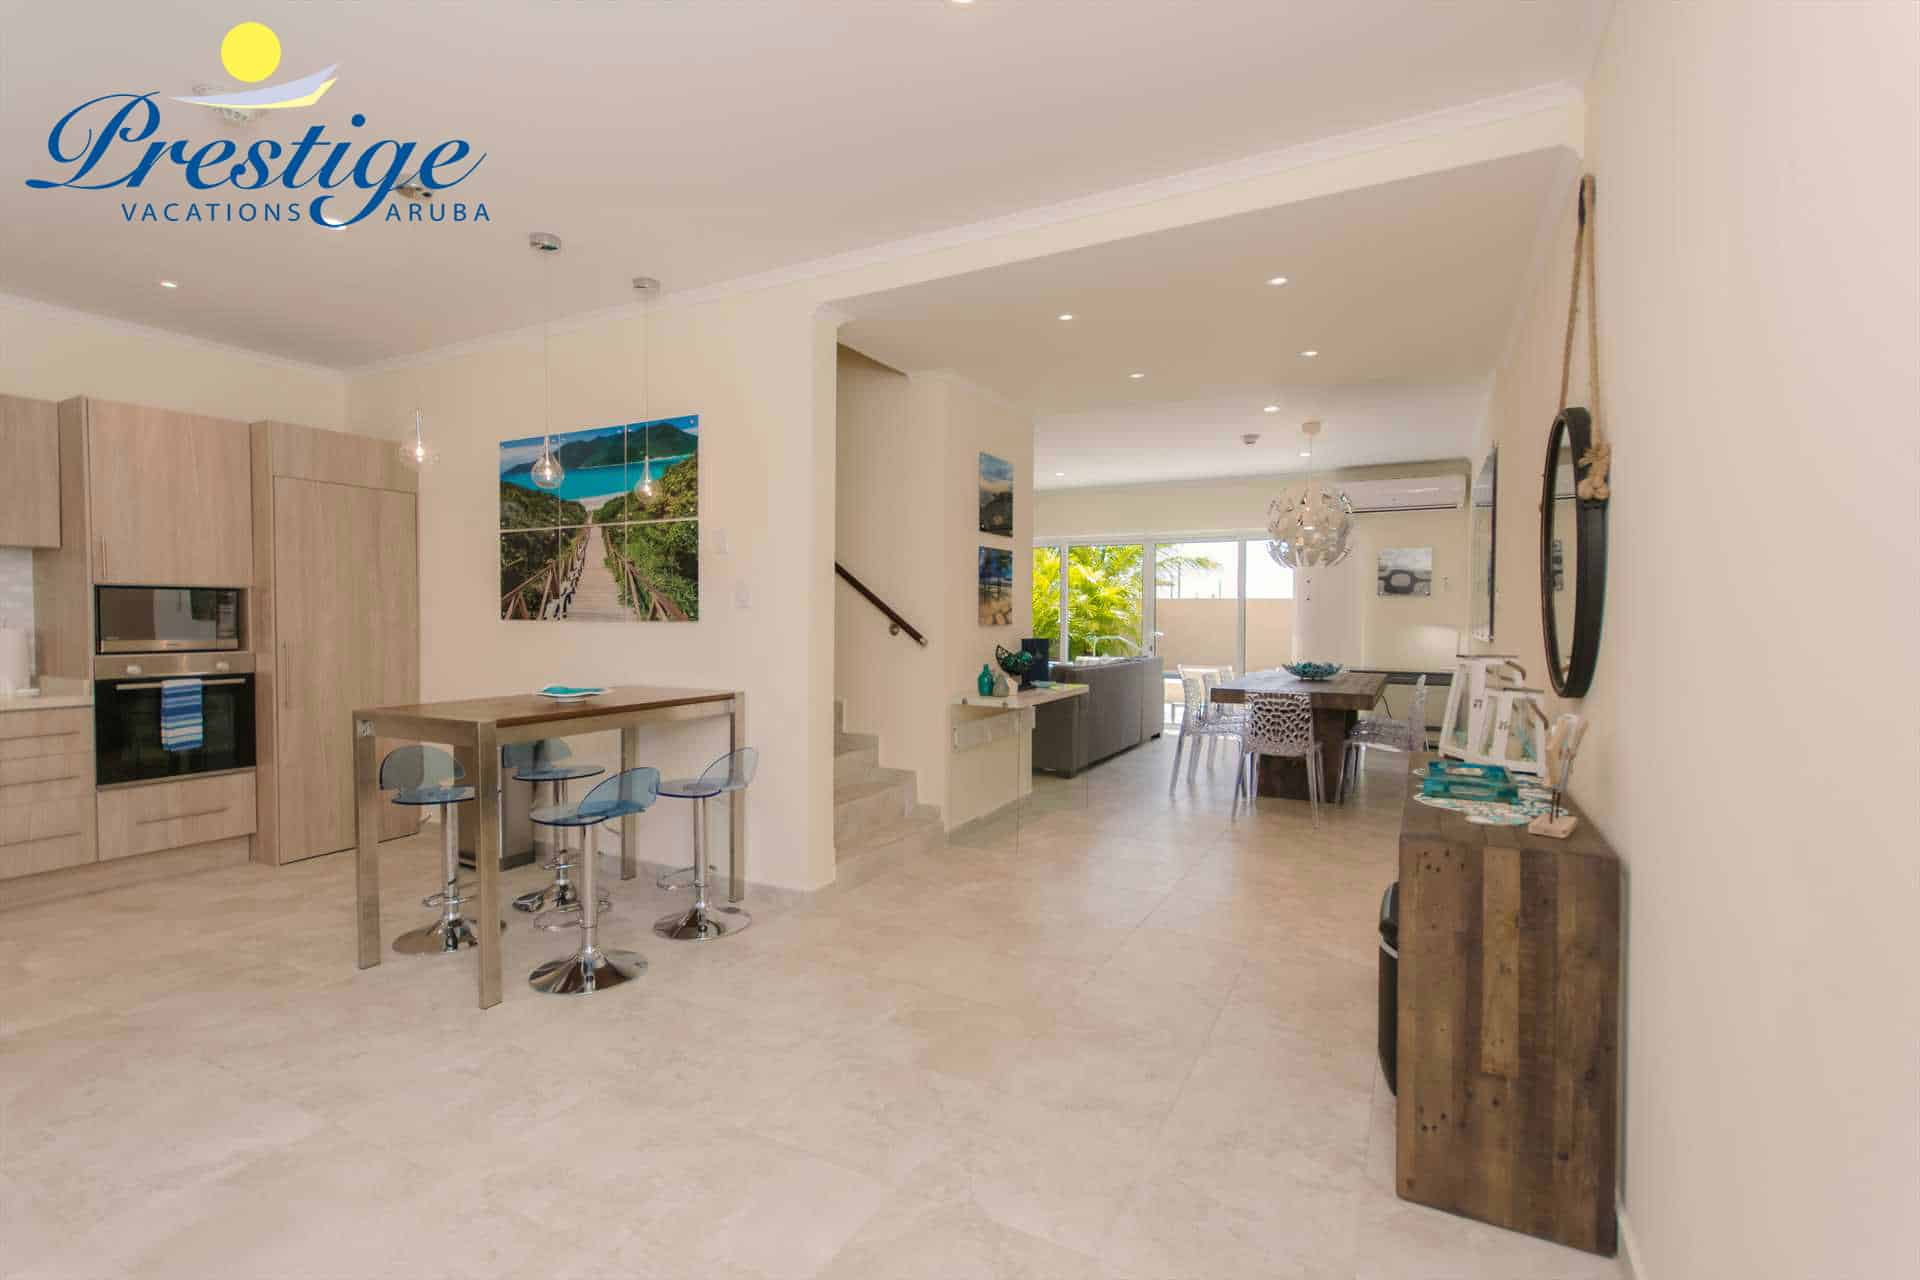 Your spacious 3-level vacation rental completed with Ipanema Beach decor